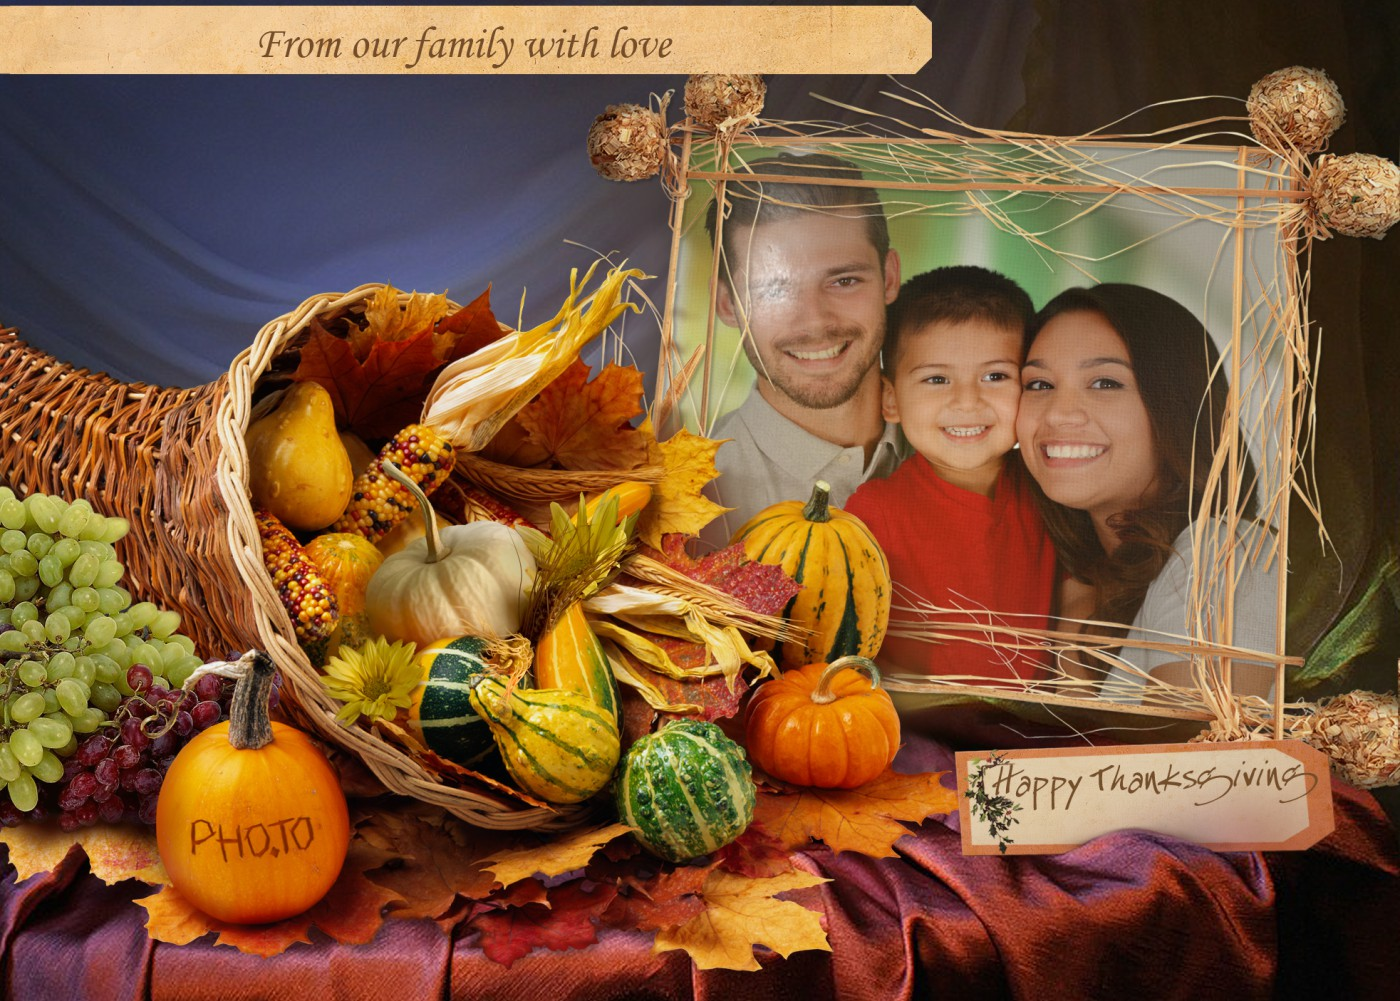 Put your photo into thanksgiving card template to get a perfect ecard.